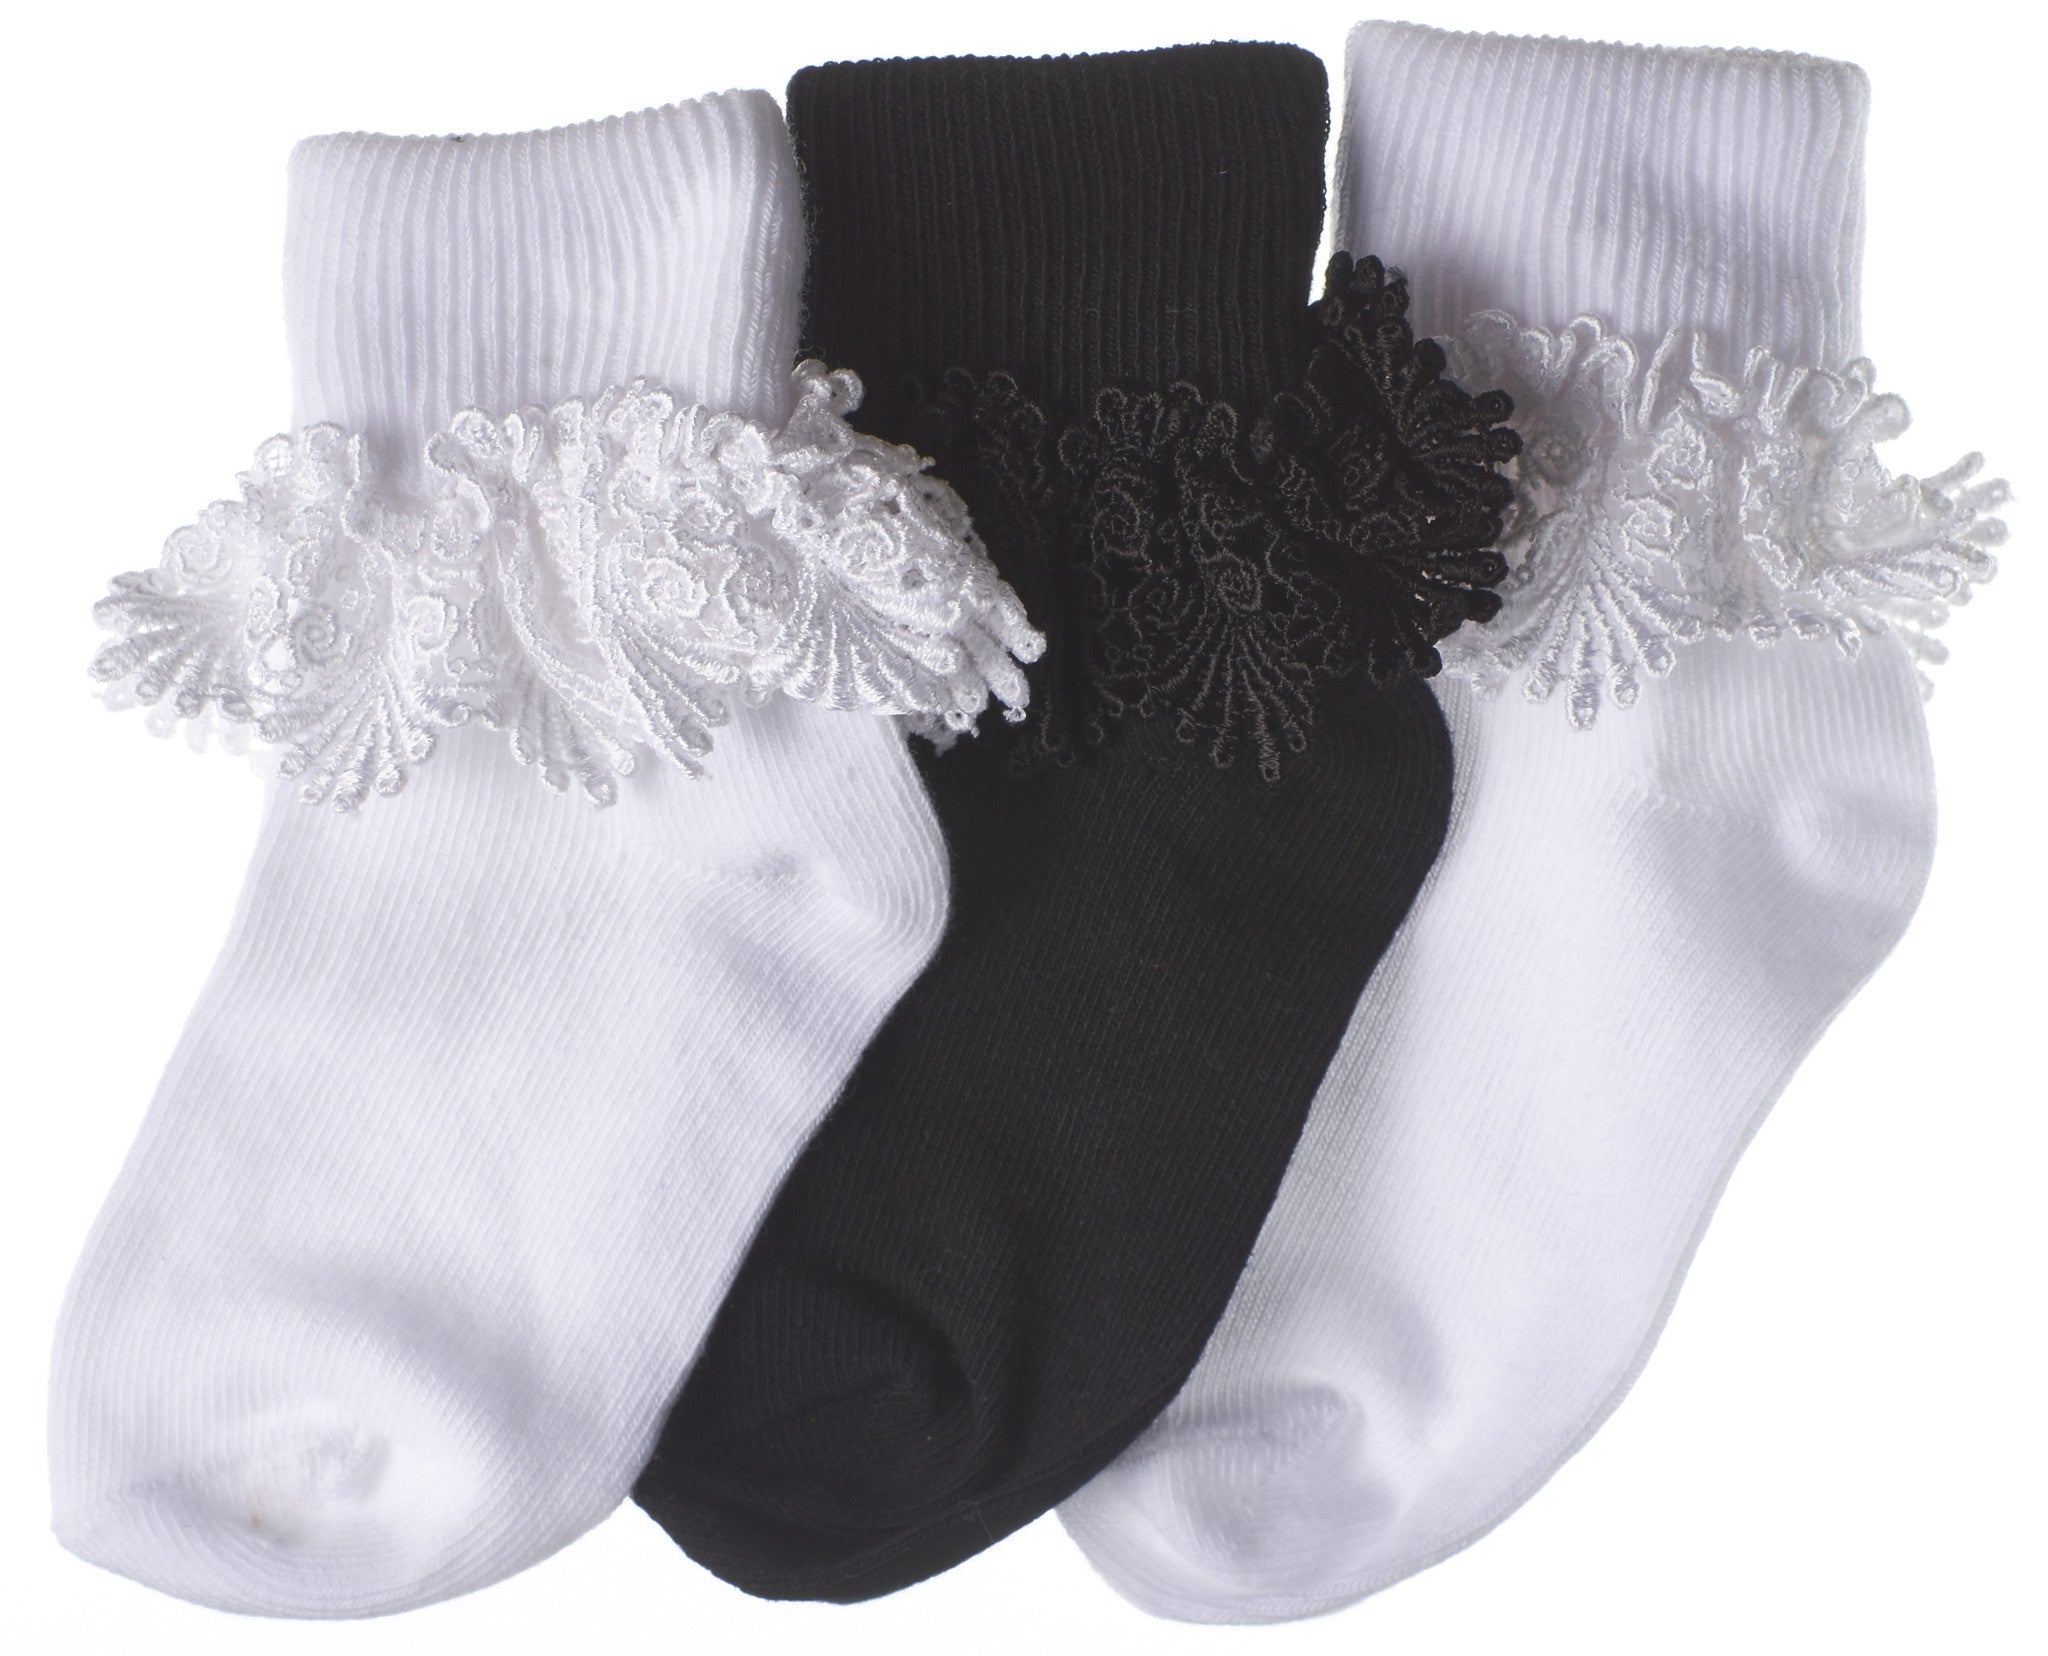 3 Pack Shiny Scallop Lace Turncuff Toddler Girls Socks White Black